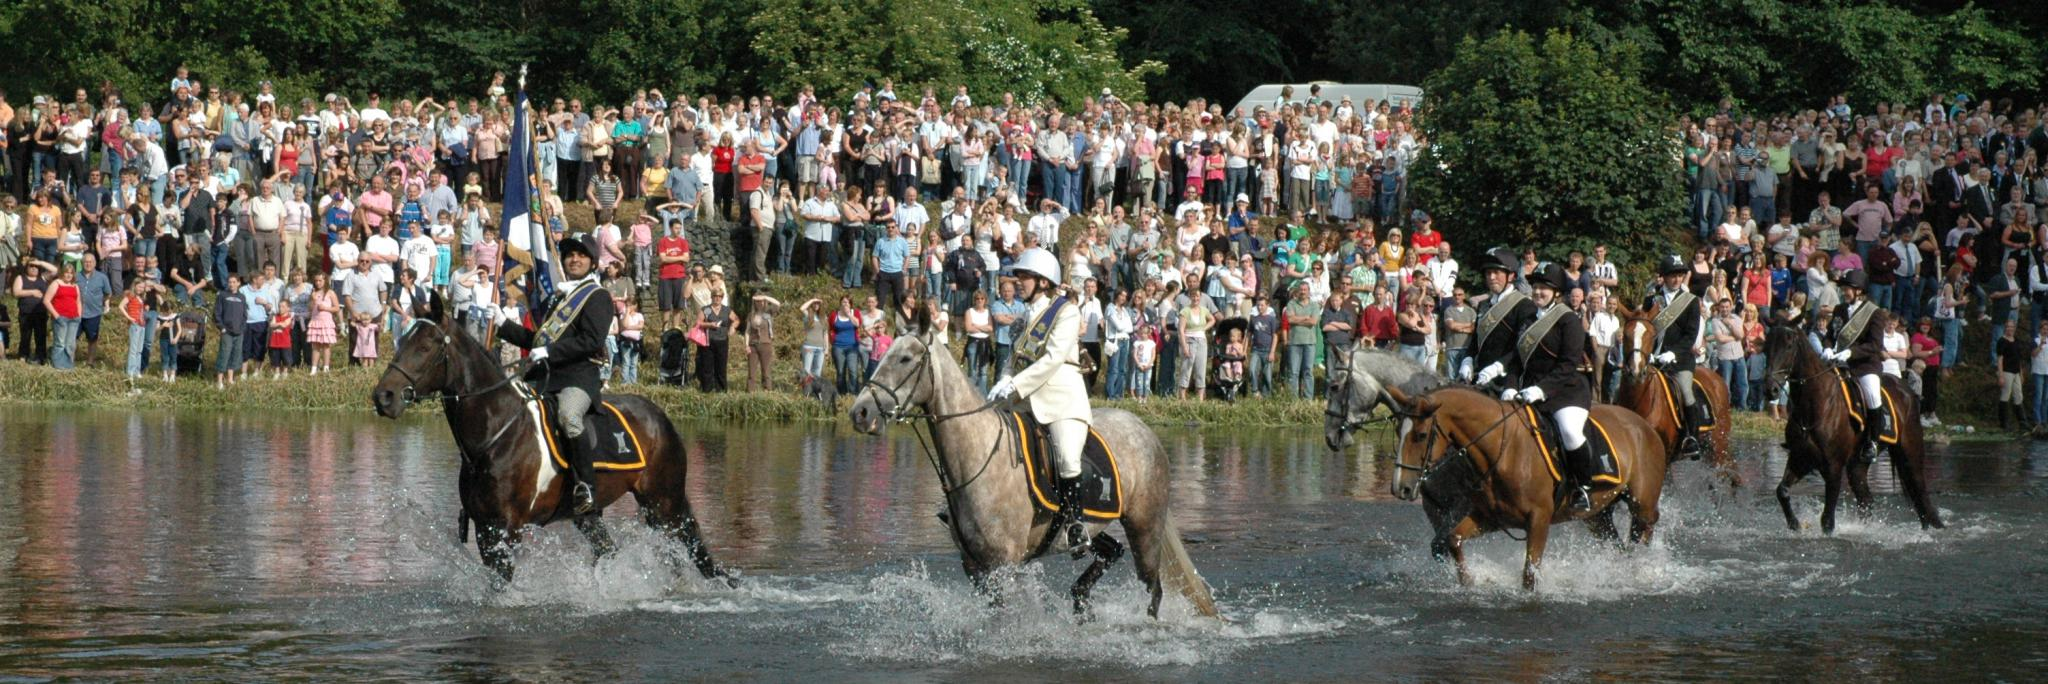 Horse riding in the Scottish Borders